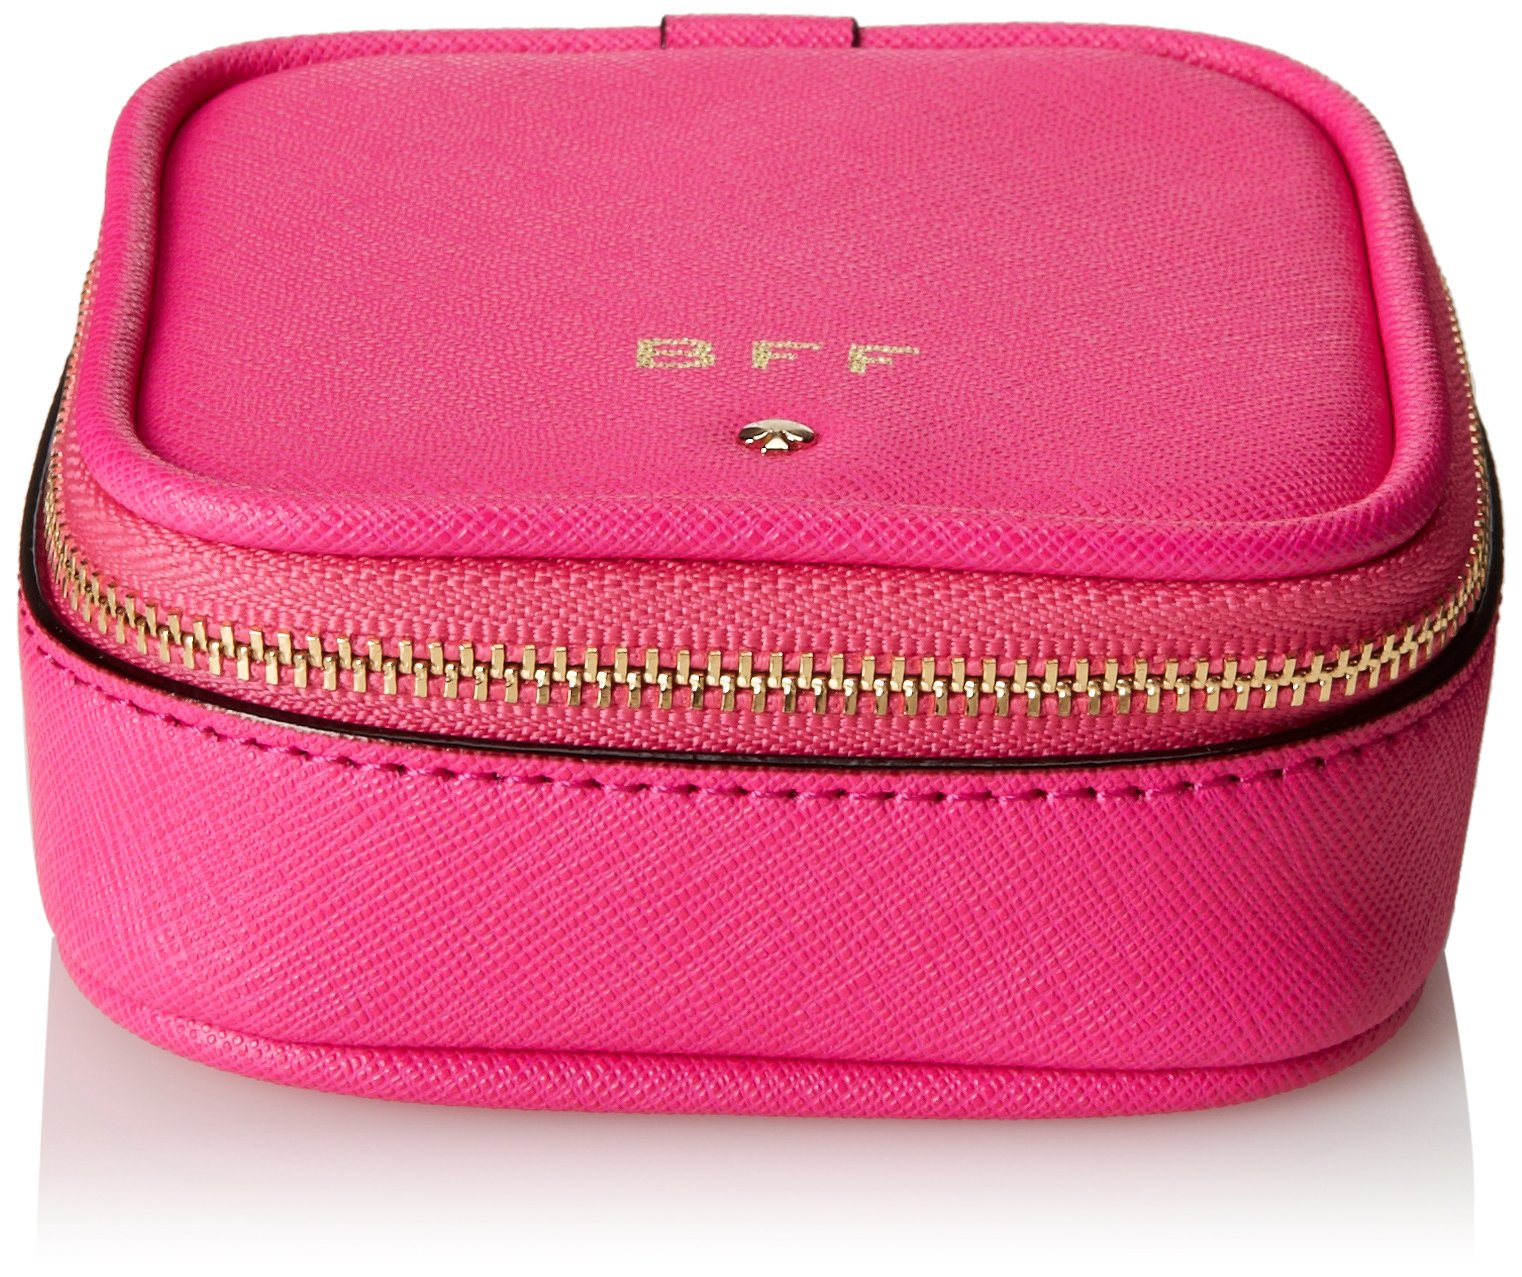 Kate Spade Wedding Belles BFF Small Grayden Jewelry Case